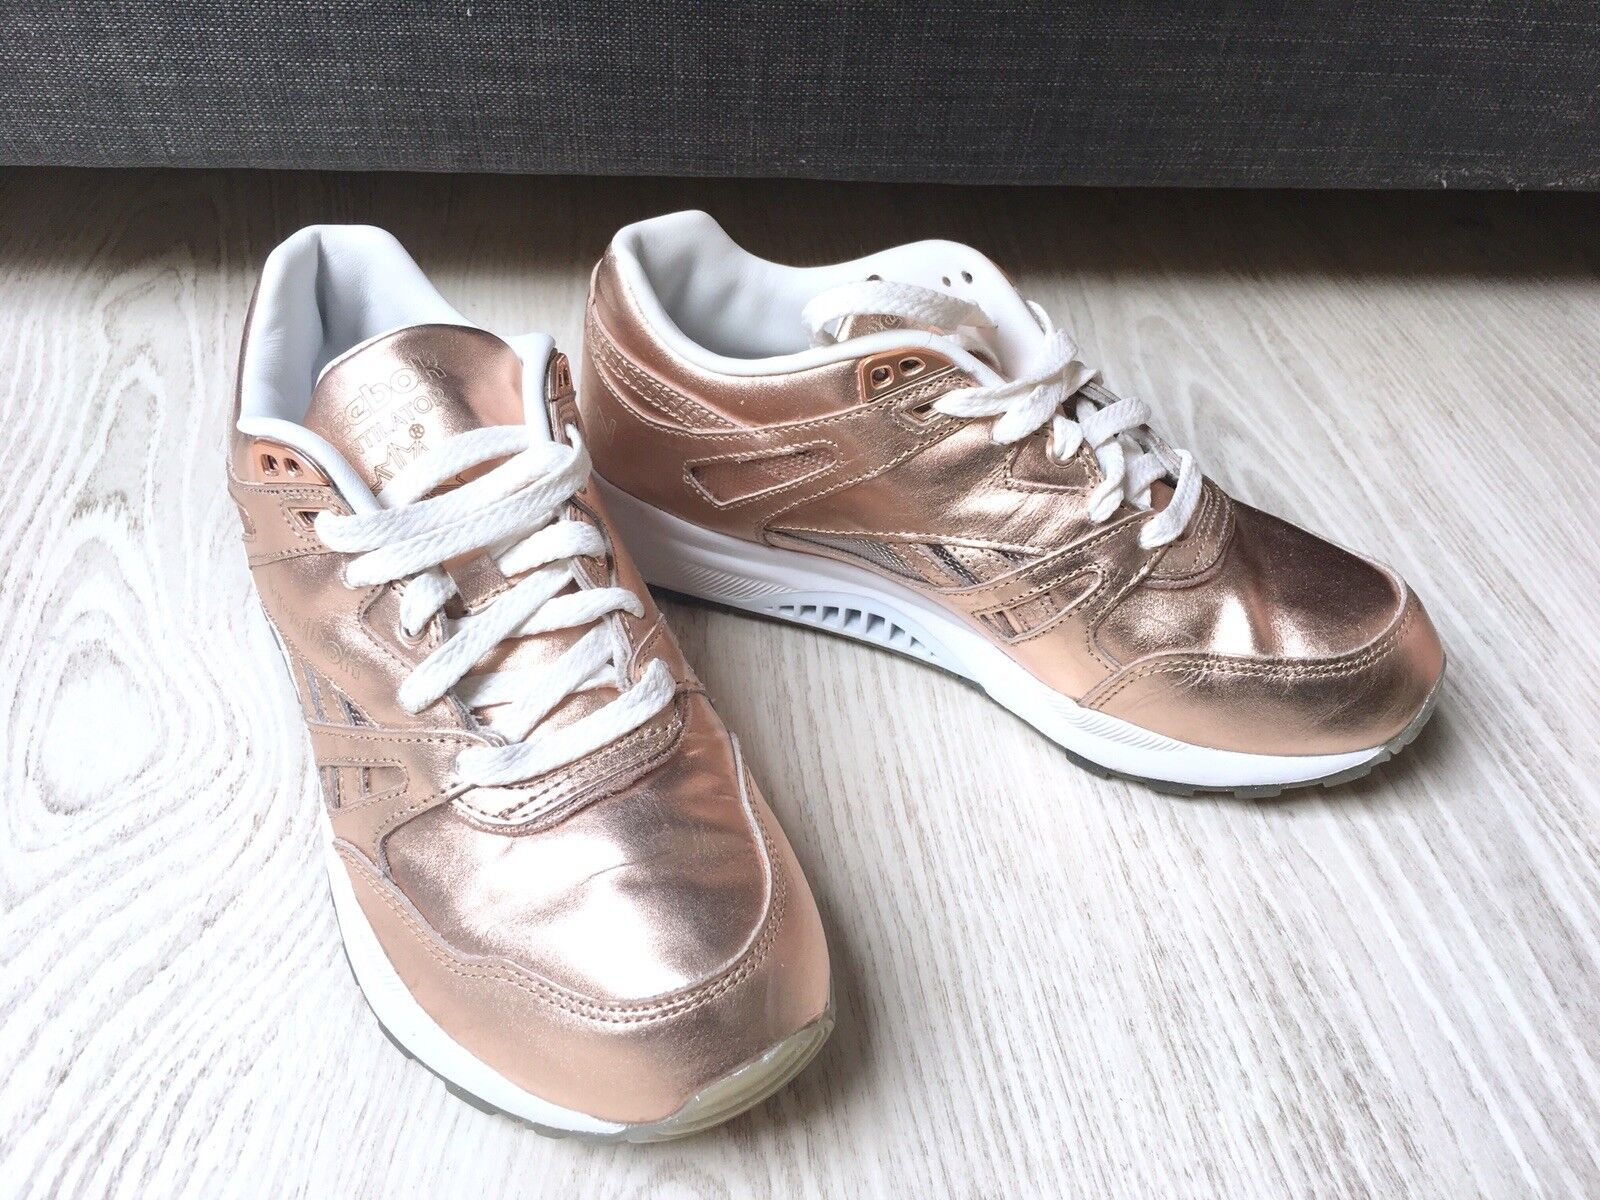 Reebok Ventilator Fruition Limited Edition Rar Roségold Kupfer 37 Limitiert